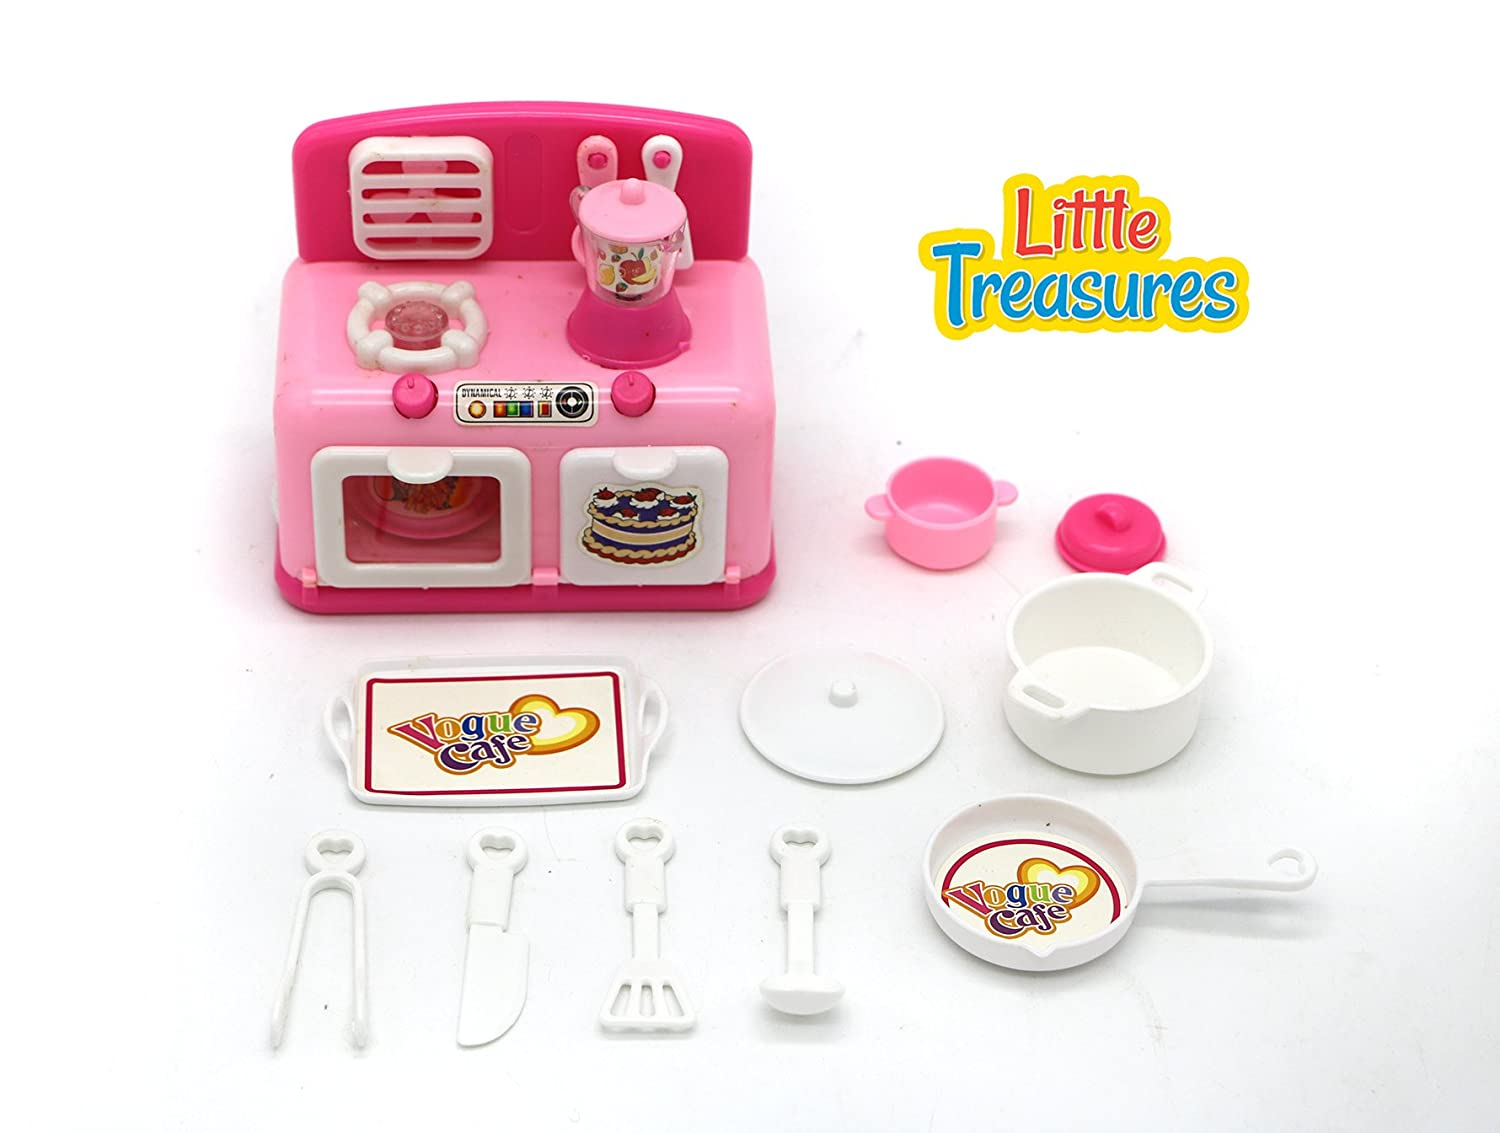 Little Treasures Appliances Stove with Lighting Effects, Assorted pots and Pans, Cooking Utensils and Crockery 11 pcs Play Kitchen Set Toy for Girls Ages 3+